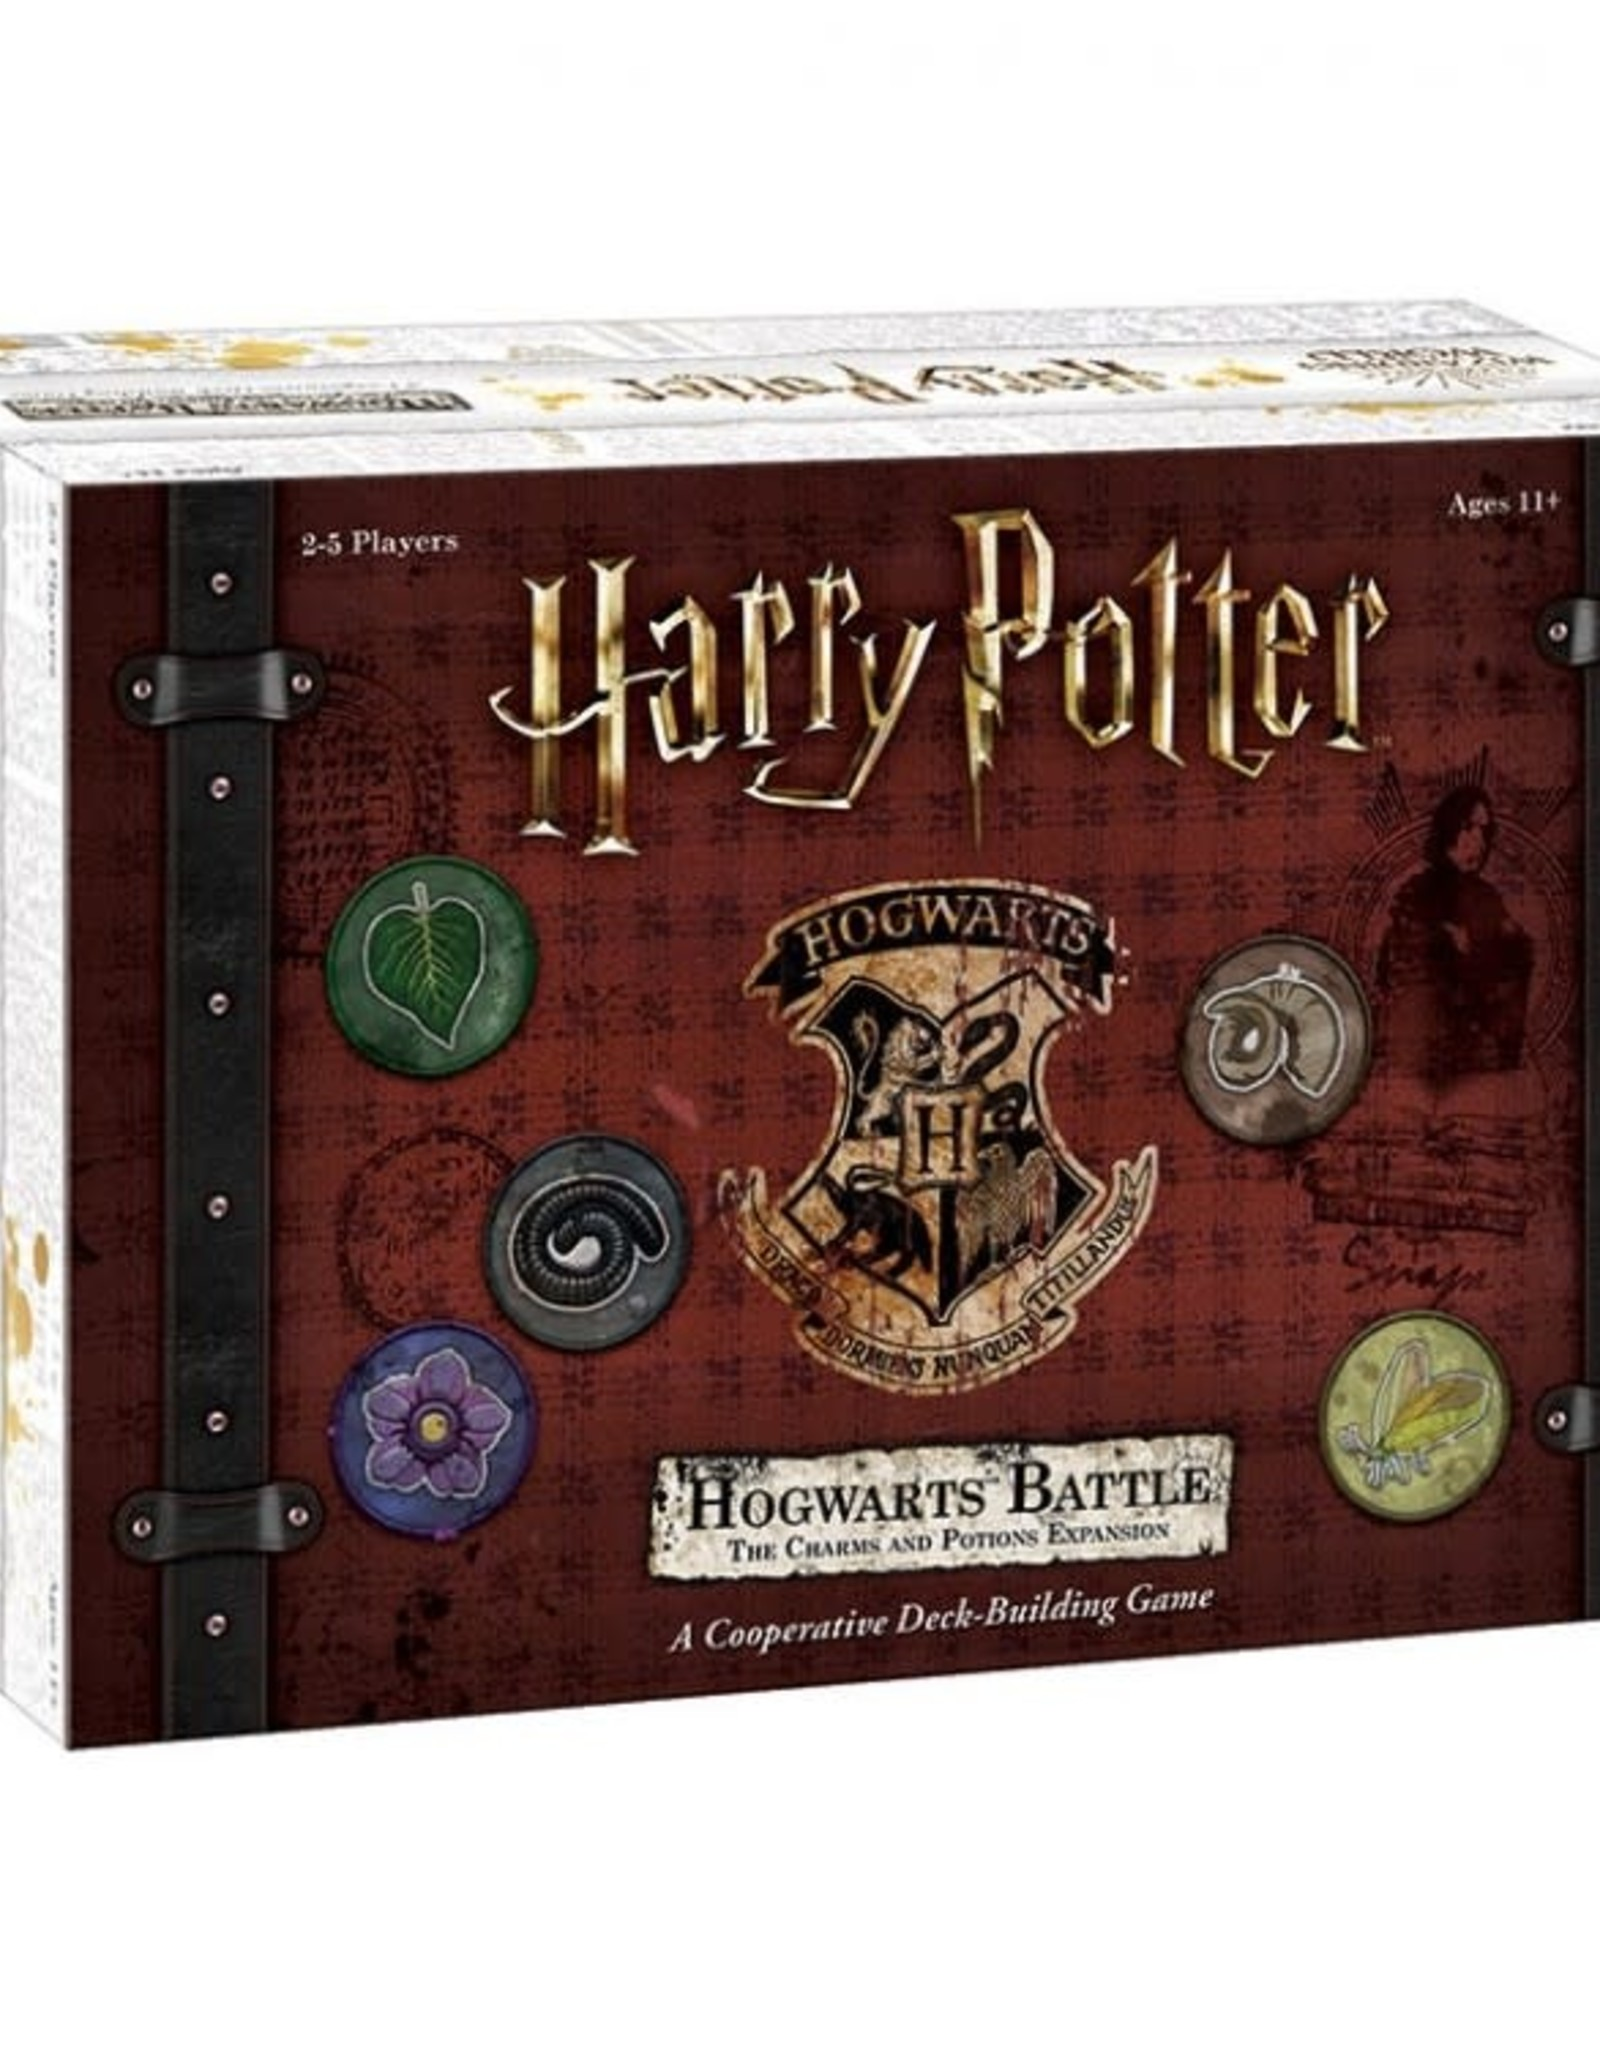 USAOPOLY Harry Potter Hogwarts Battle: Charms & Potions